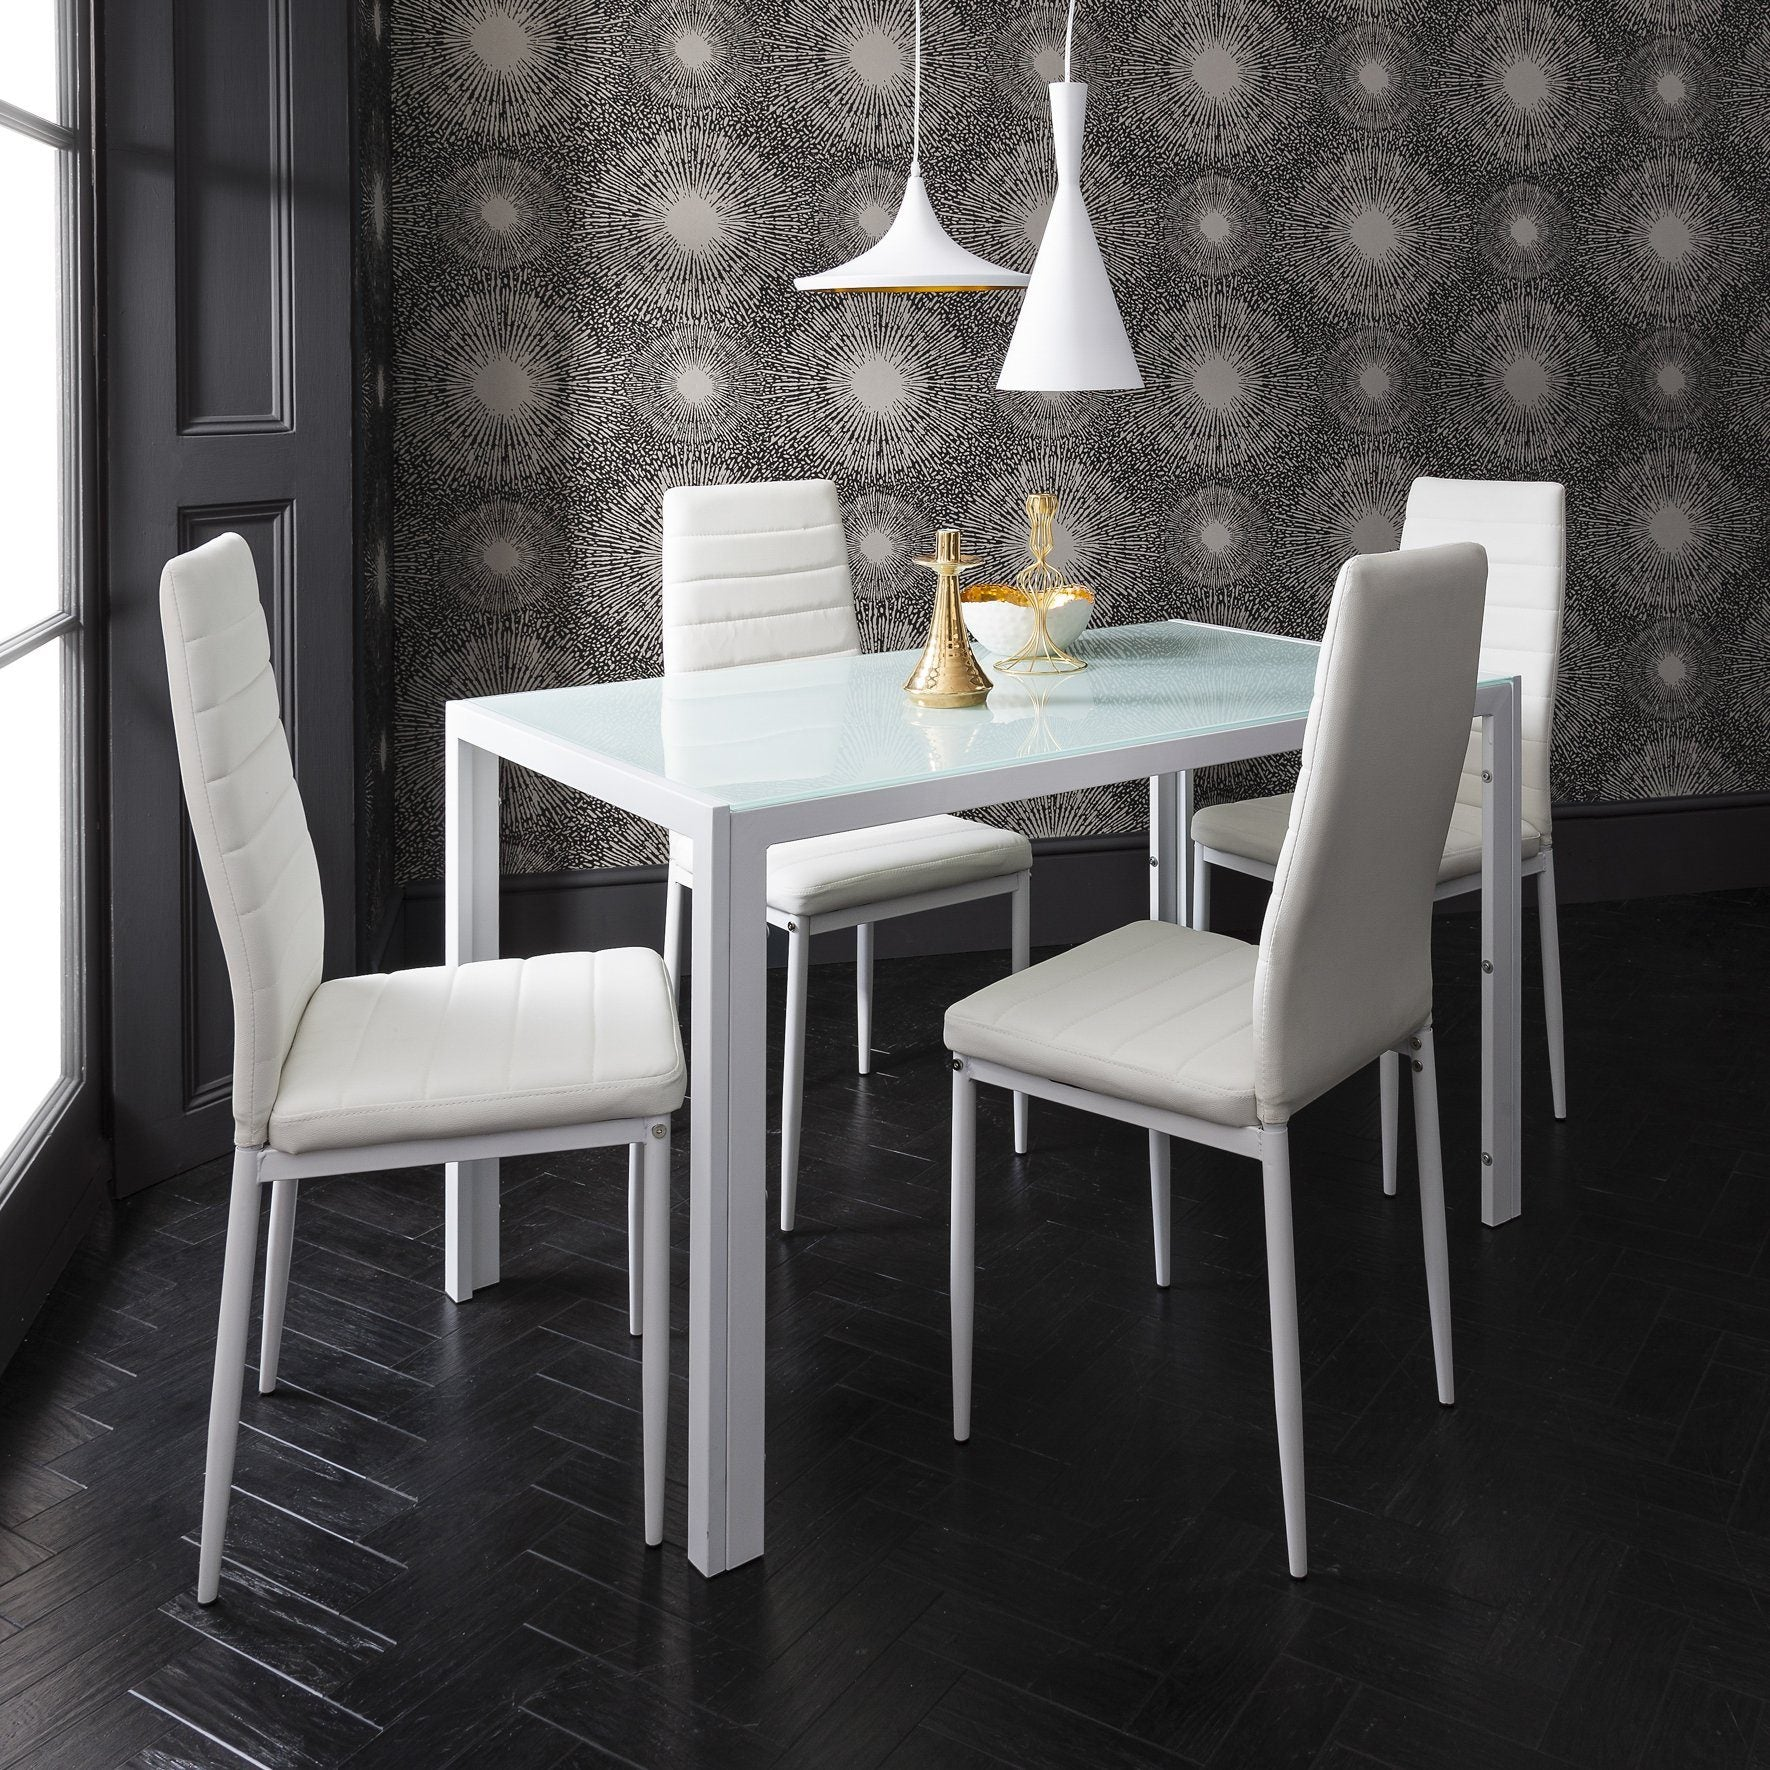 white dining table and chairs  4 seater set  in stock